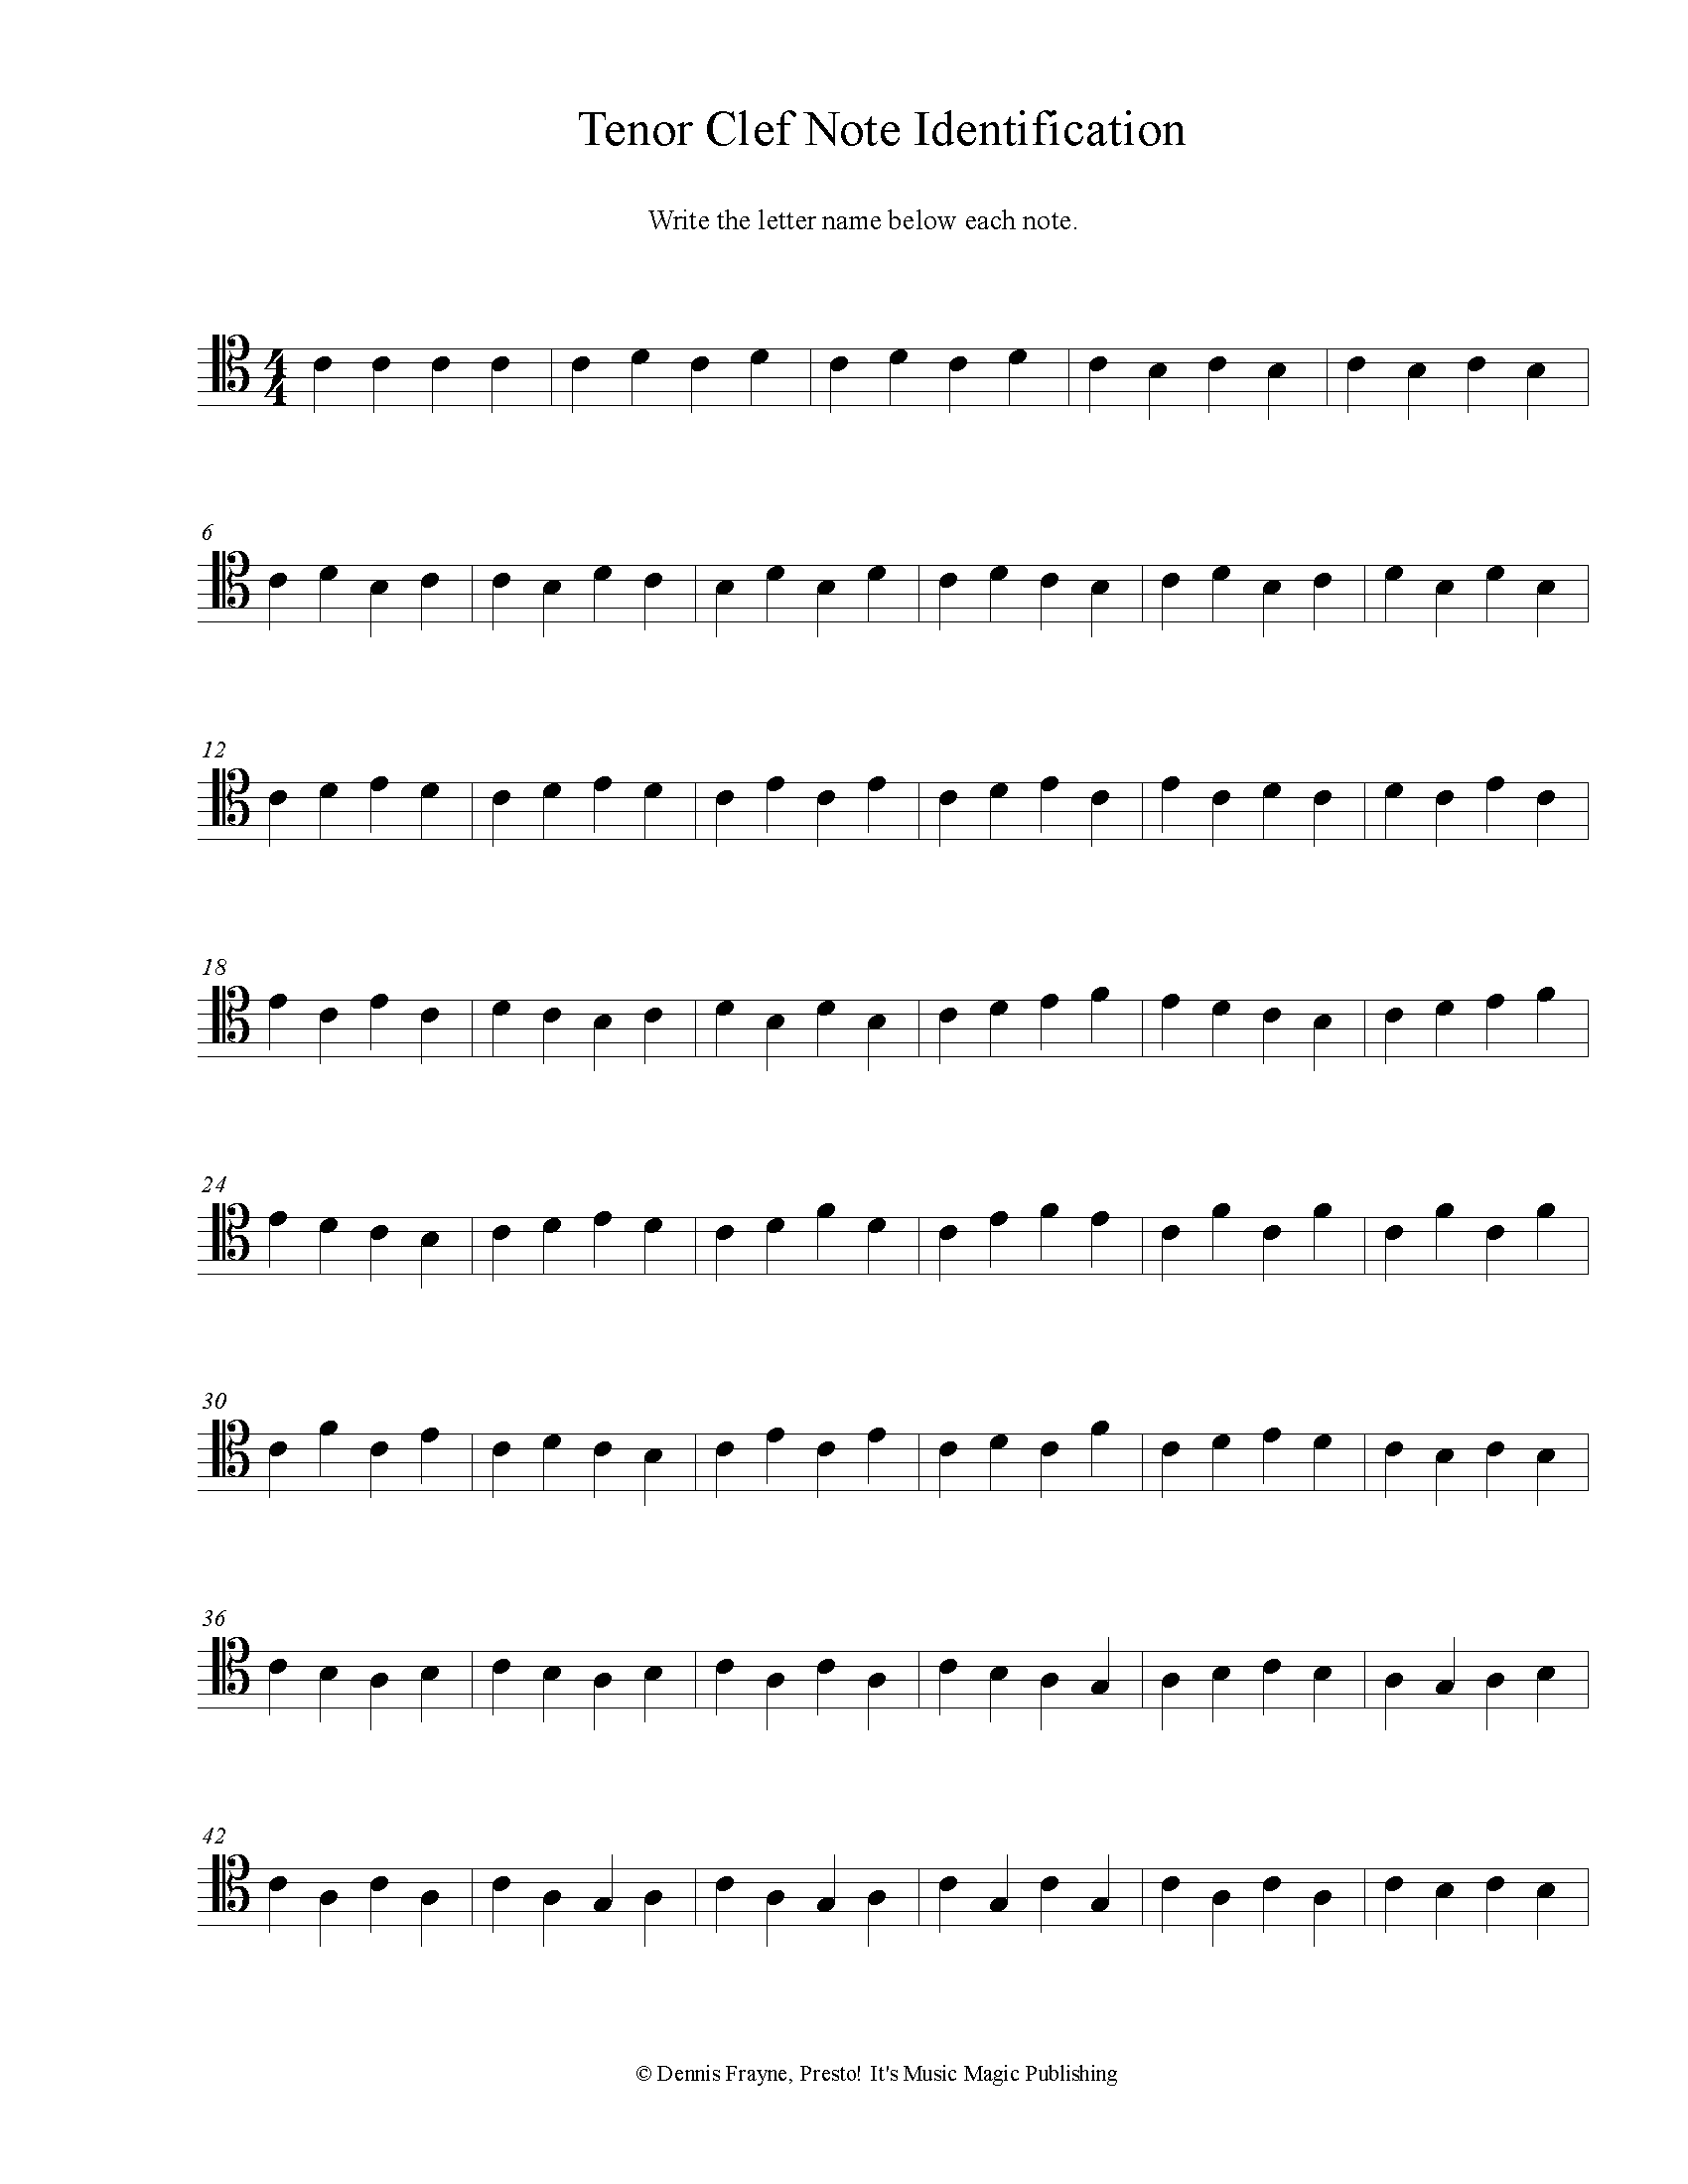 Tenor Clef Note Identification Printable Worksheet pdf file 2 pages